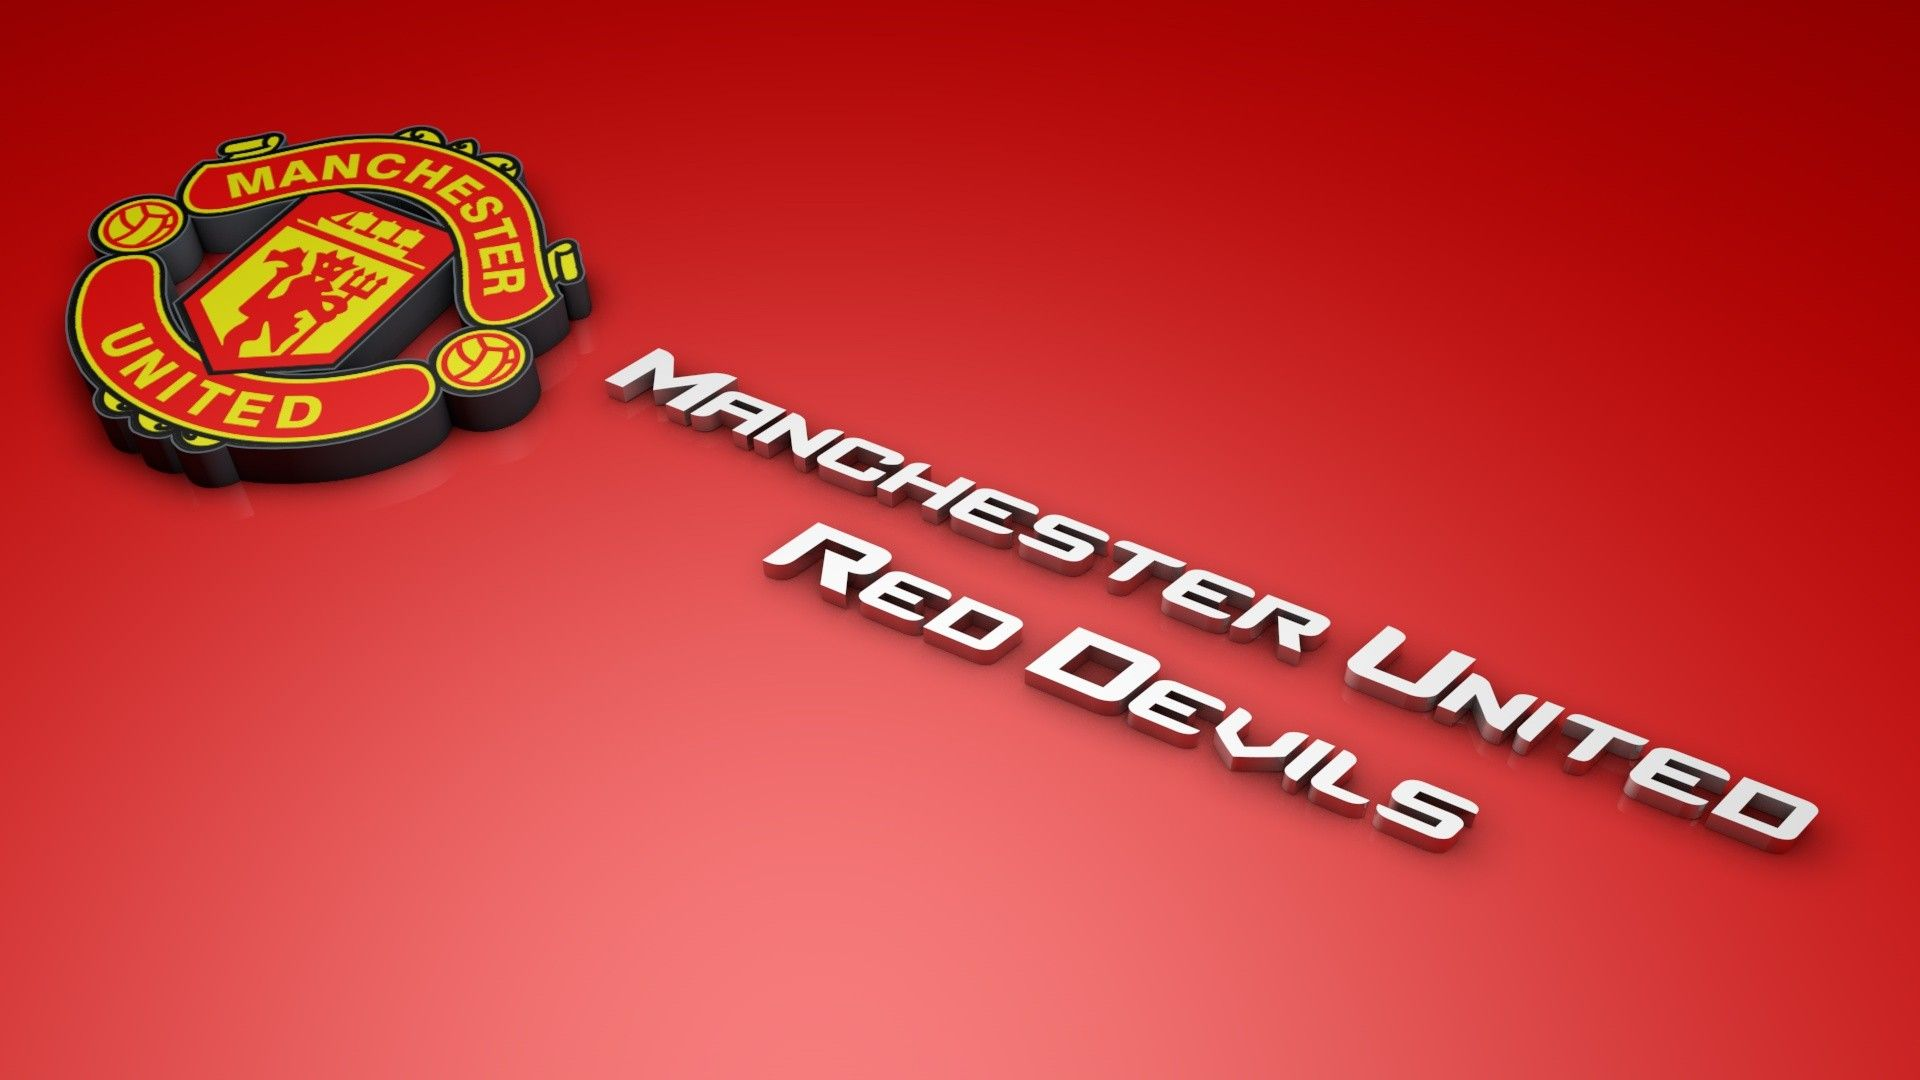 Manchester United Hd Wallpaper 3d 1920 1080 Gambar